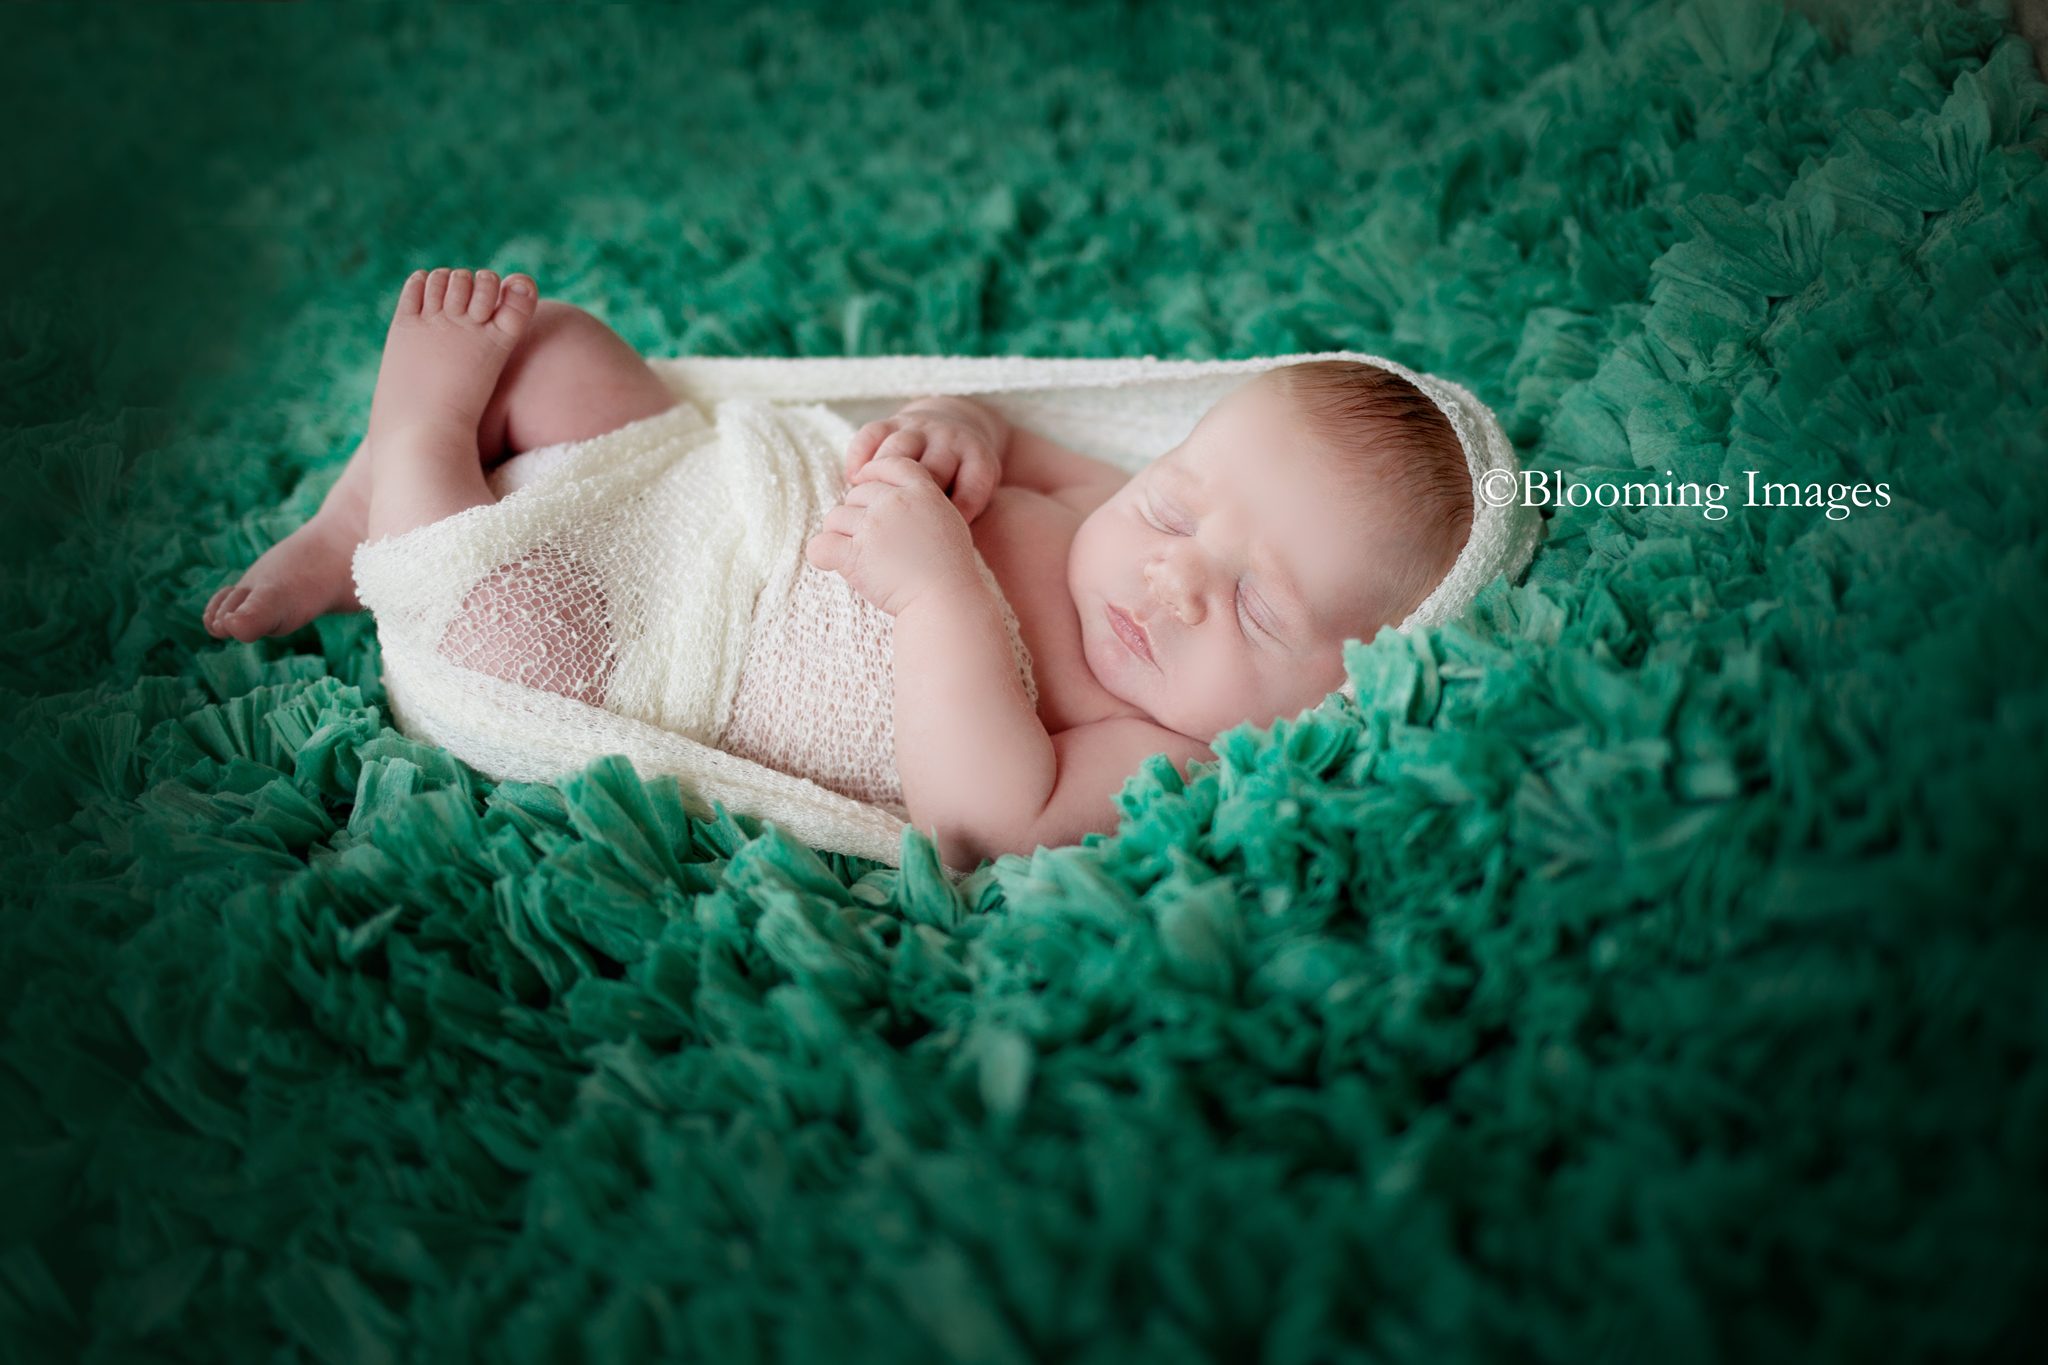 Albuquerque Newborn Photographer, Albuquerque Newborn Photographers, Santa Fe Newborn Photographers, Taos Newborn Photographers, New Mexico Newborn Photographer, New Mexico Newborn Photographers, Albuquerque baby photographers